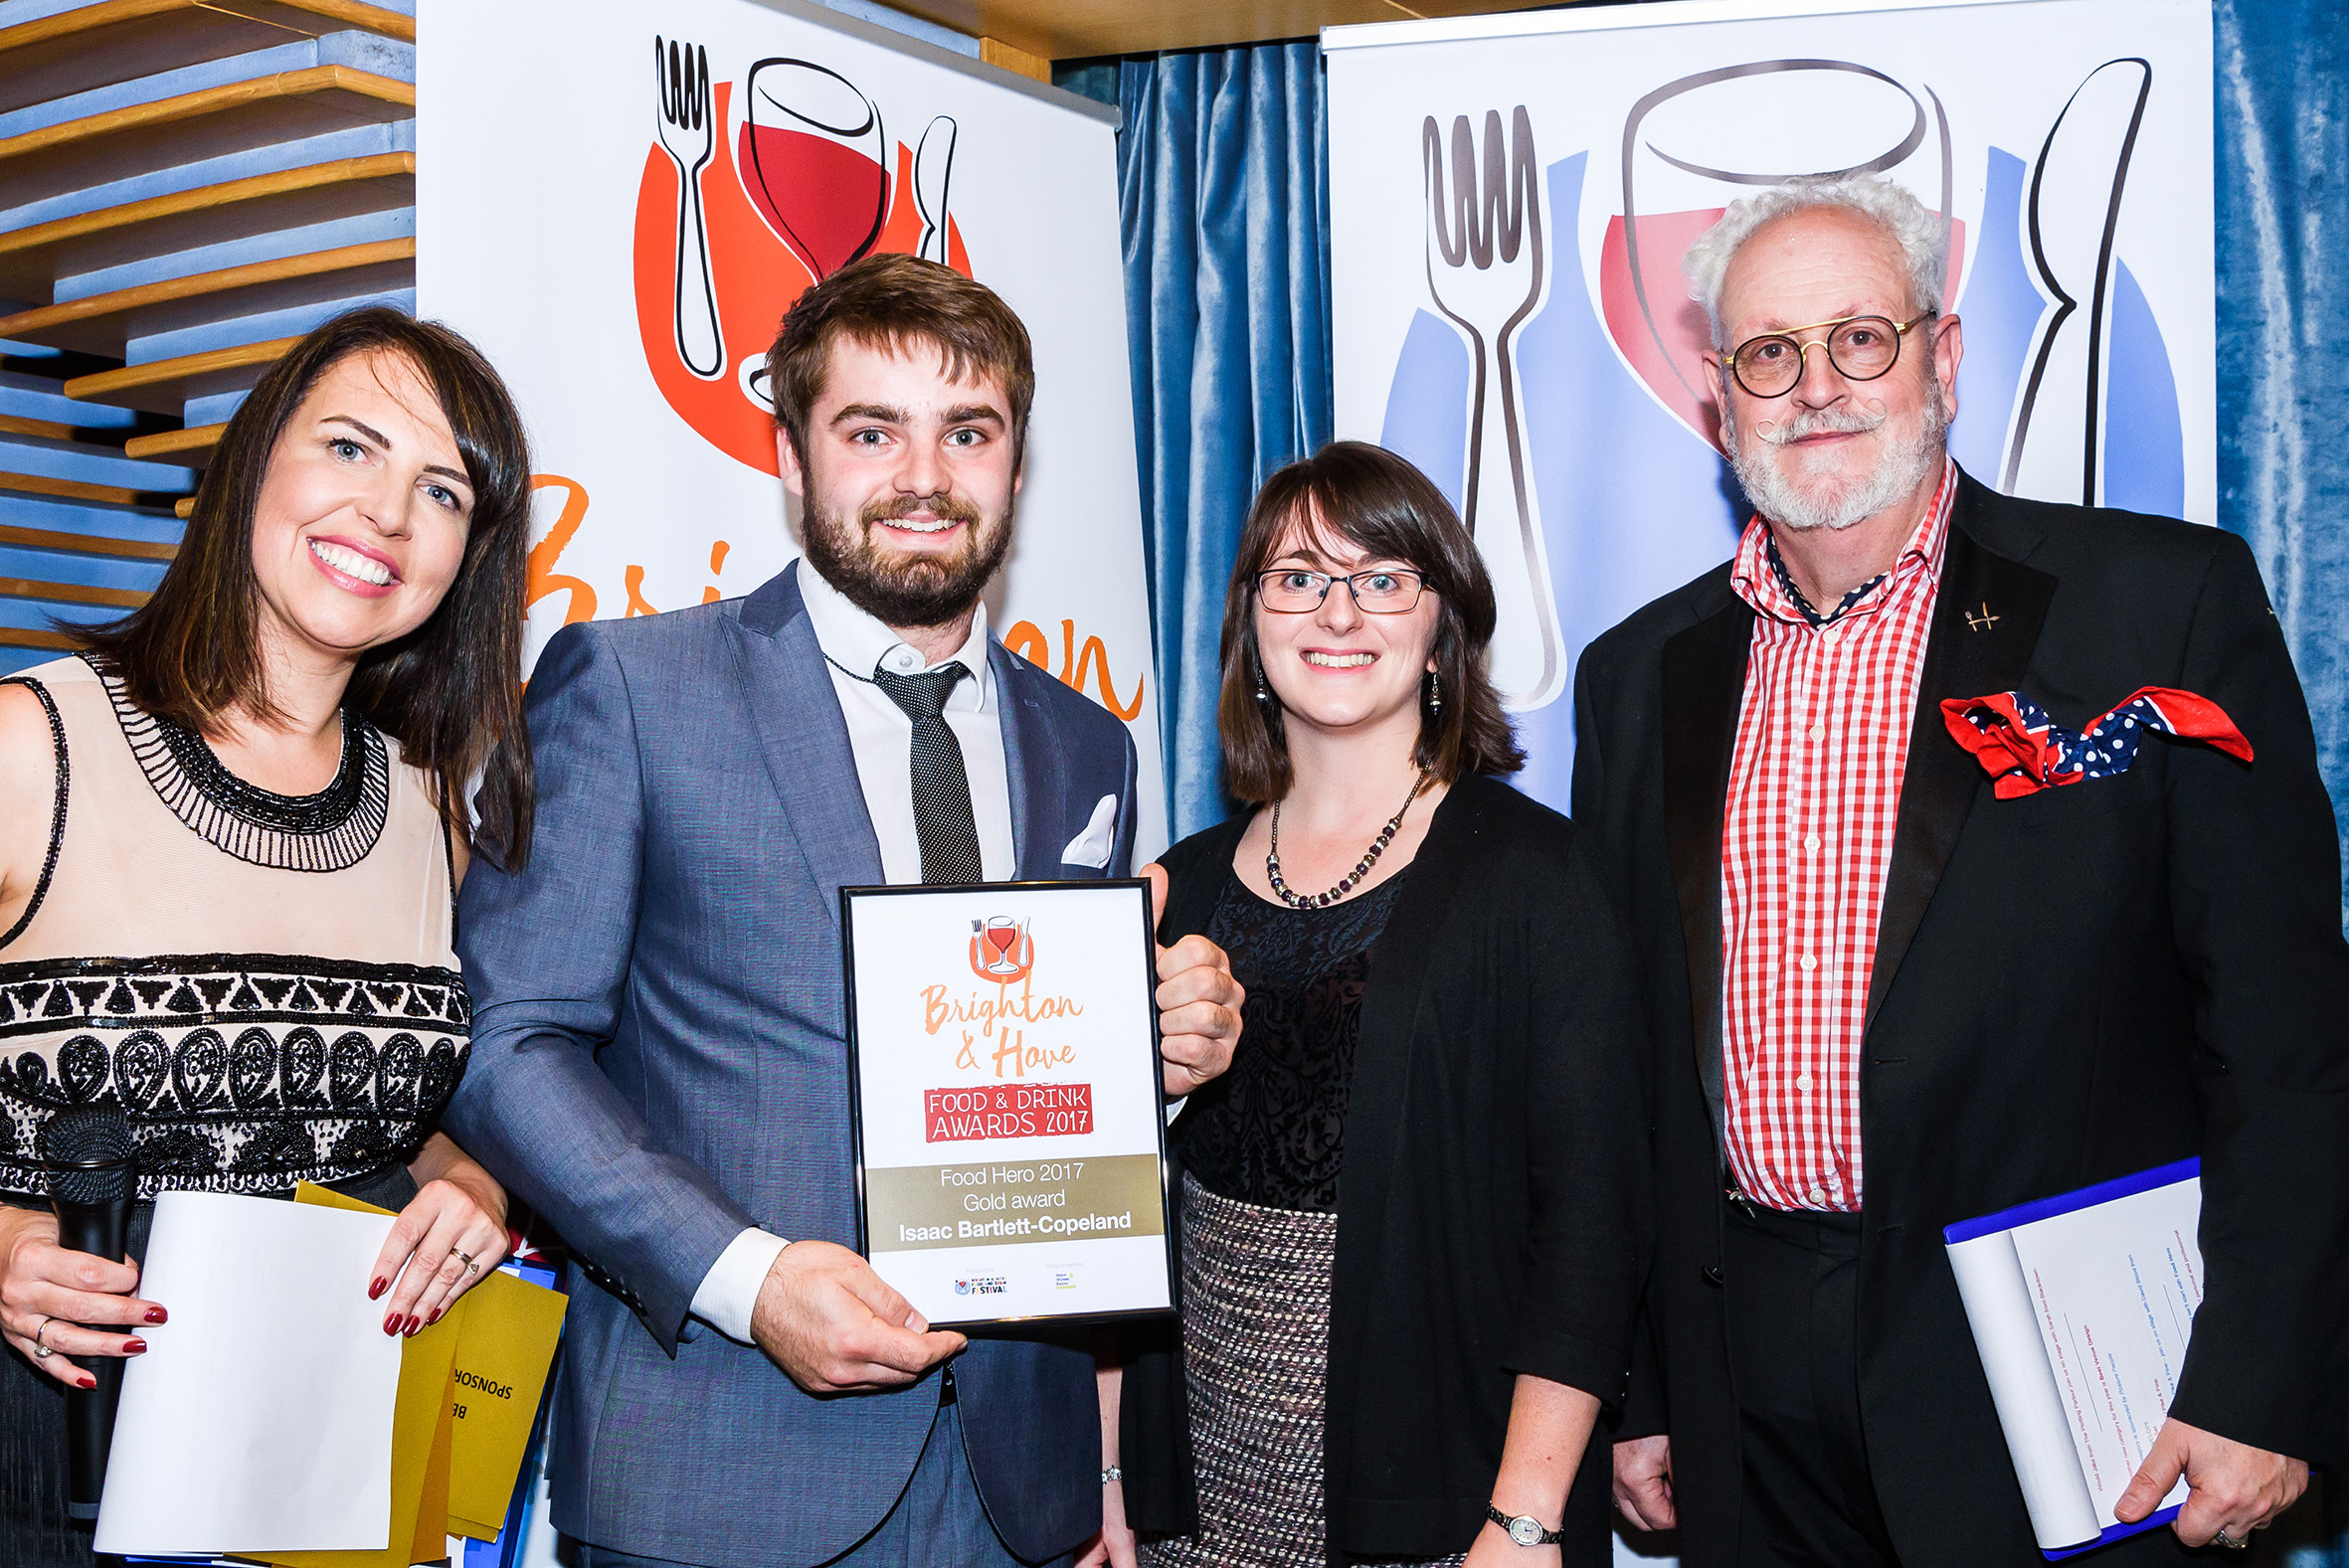 Isaac Bartlett Copeland of Isaac At  winner of Food Hero atthe 2017  Brighton and Hove food awards  Photo Julia Claxton